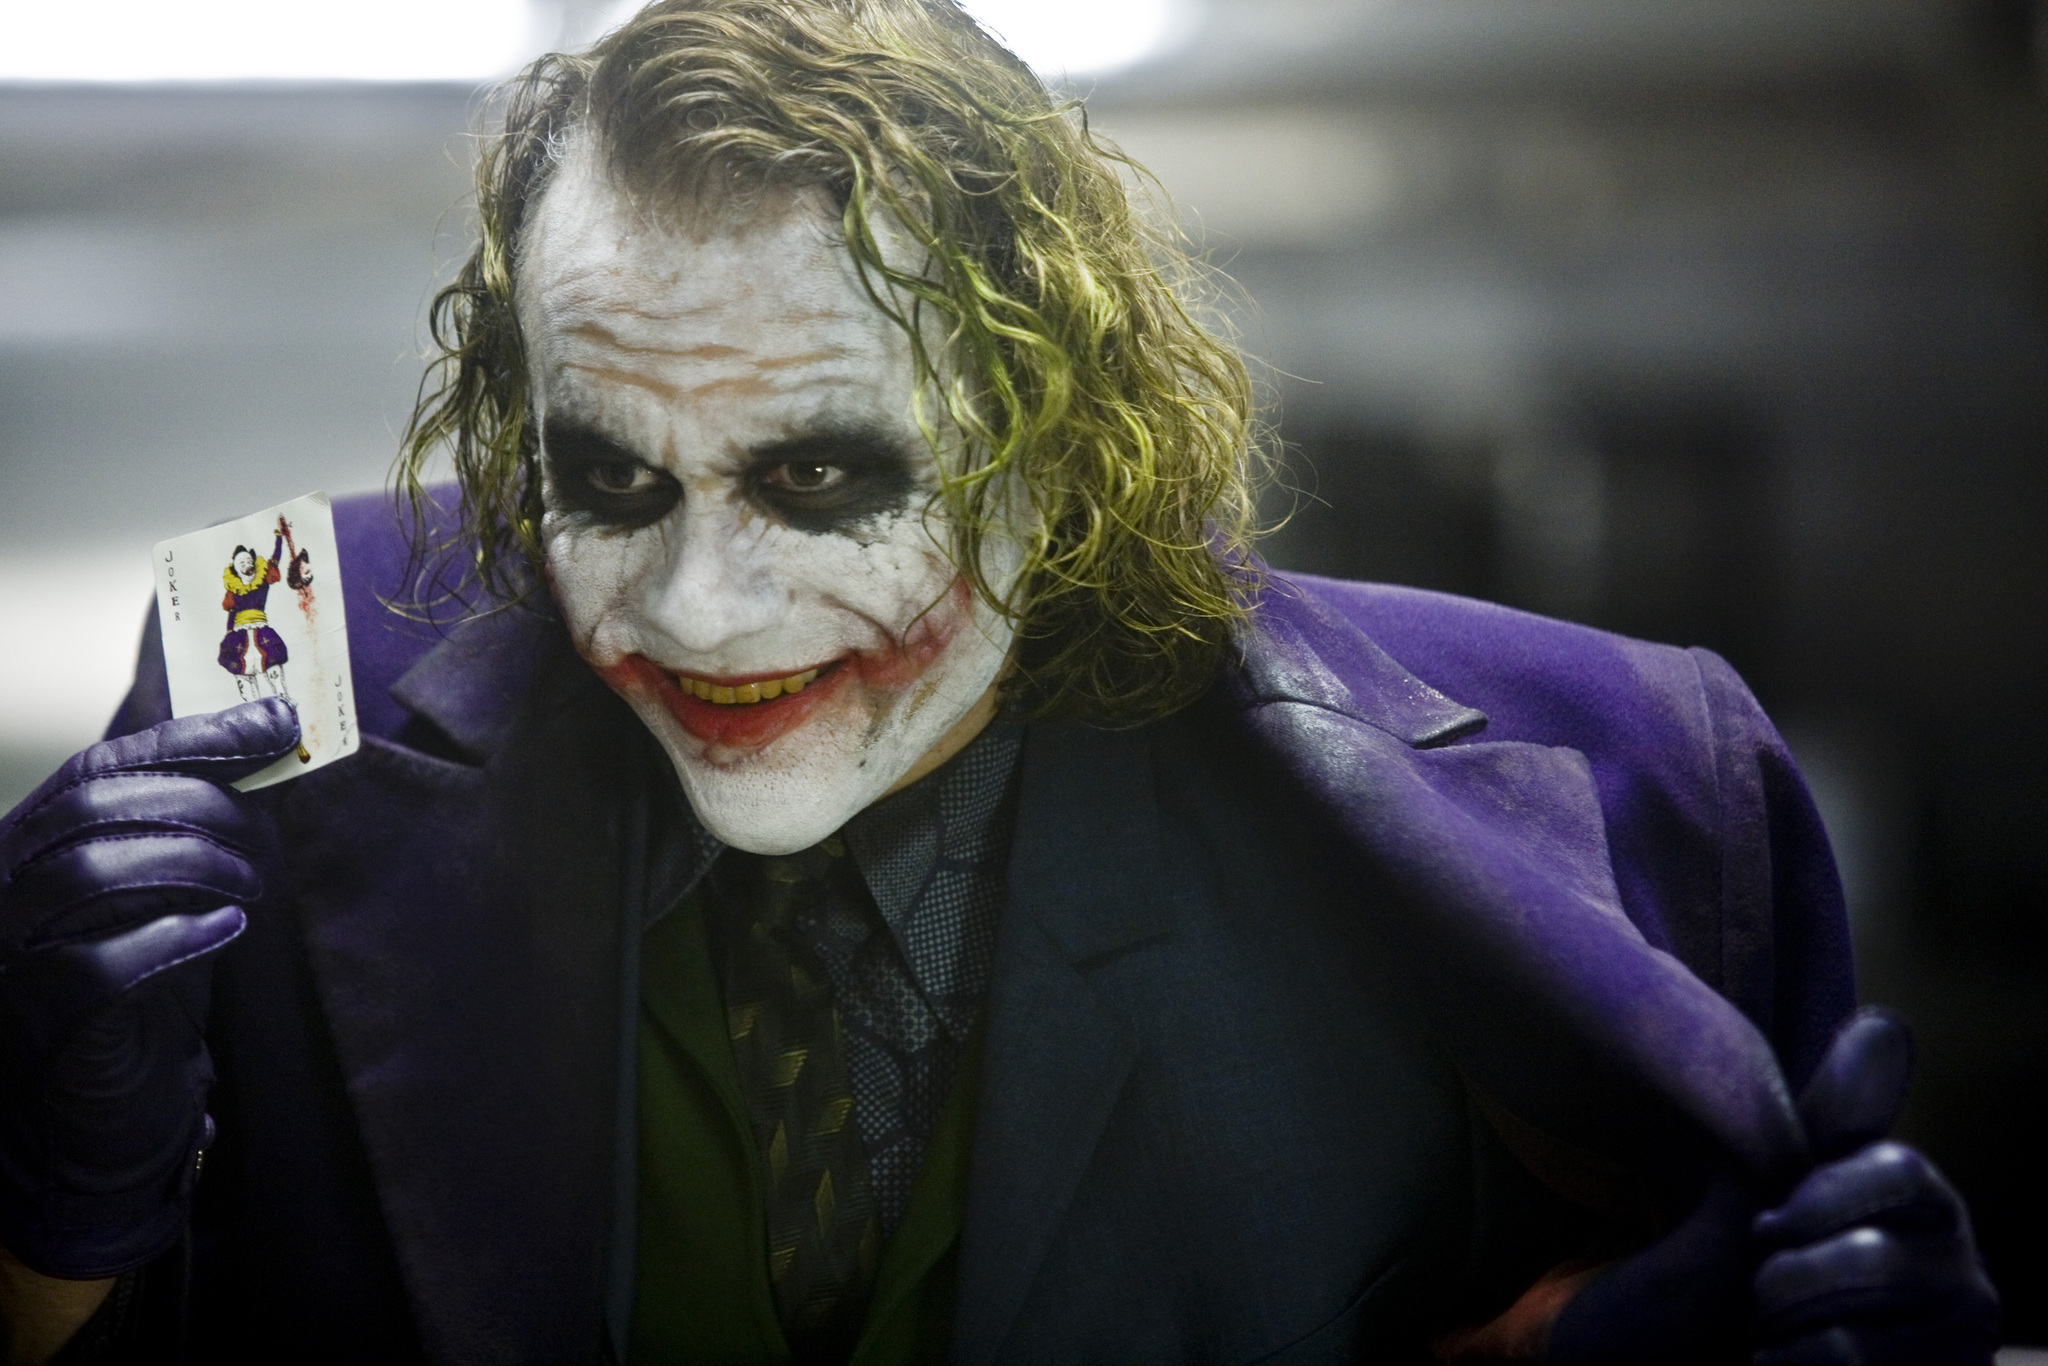 Heath Ledger joue le Joker, dans The Dark Knight